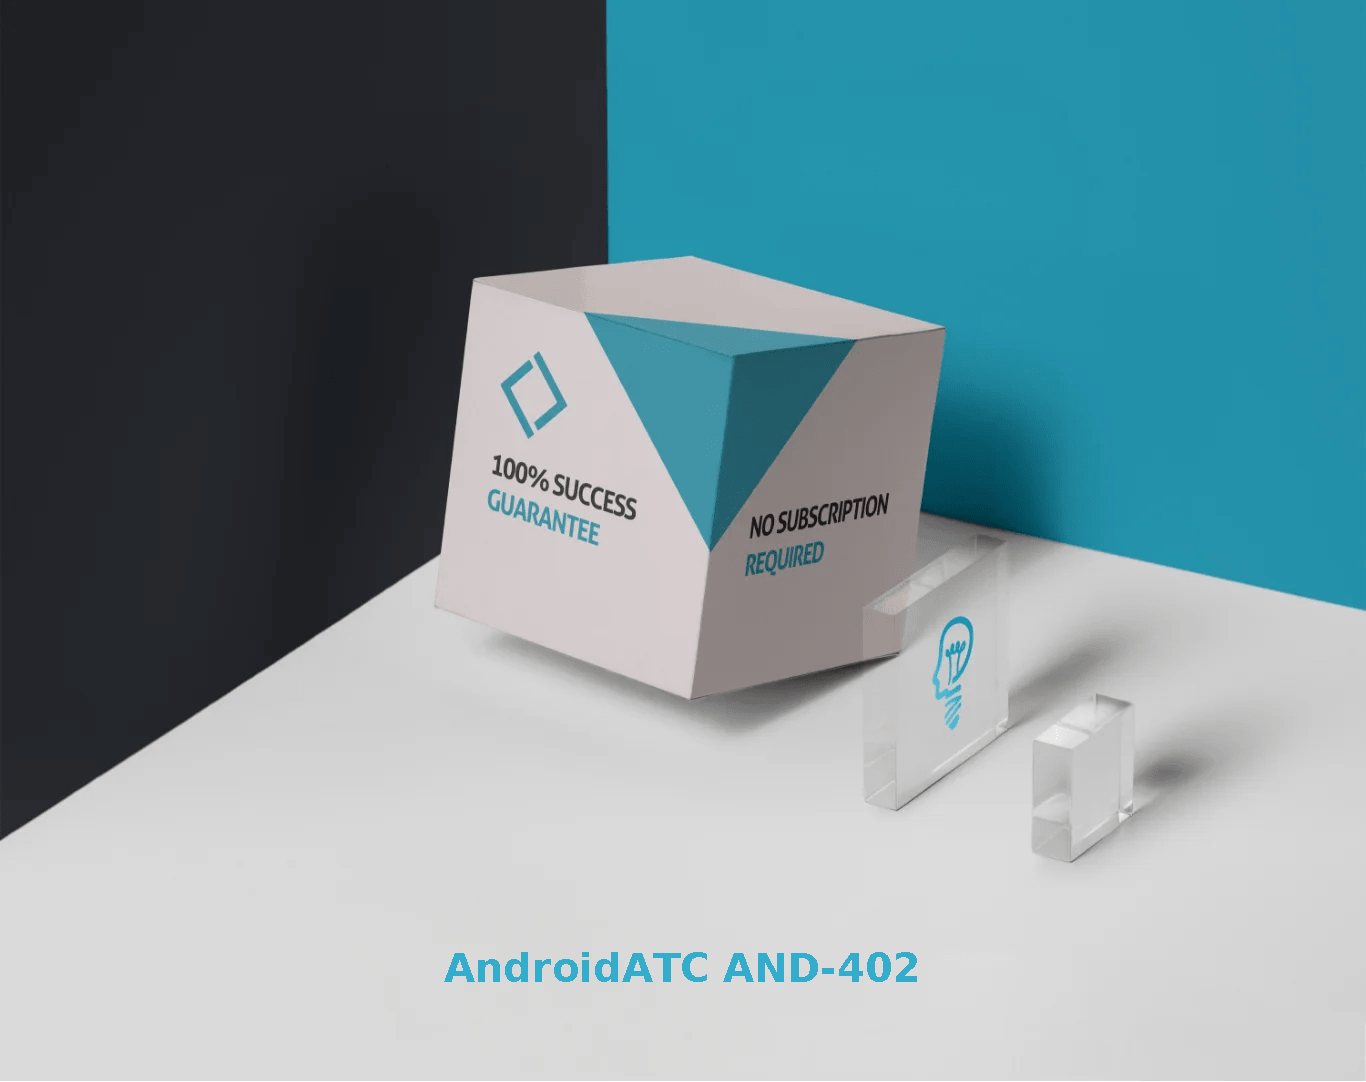 AndroidATC AND-402 Exams